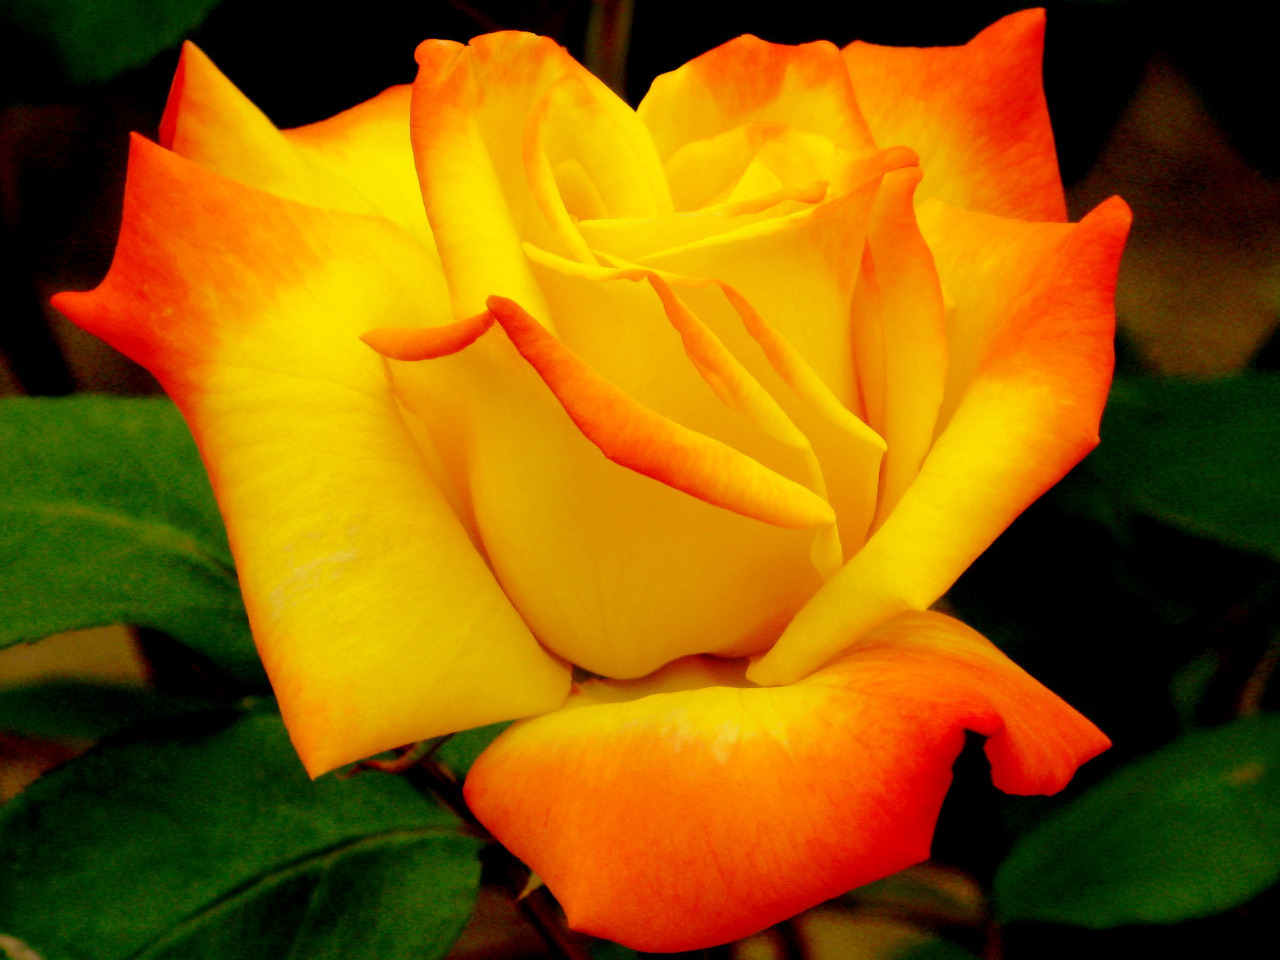 Roses images Beautiful Color wallpaper photos 18577529 1280x960